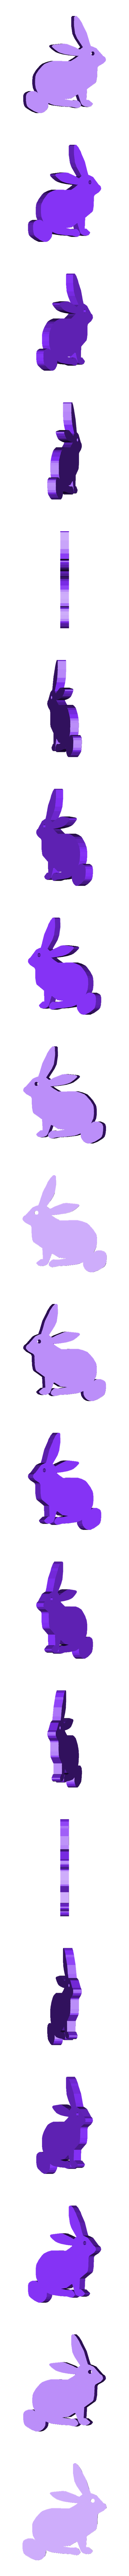 bunnies.stl Download free STL file Easter Bunny Charms • 3D printer design, Cilshell